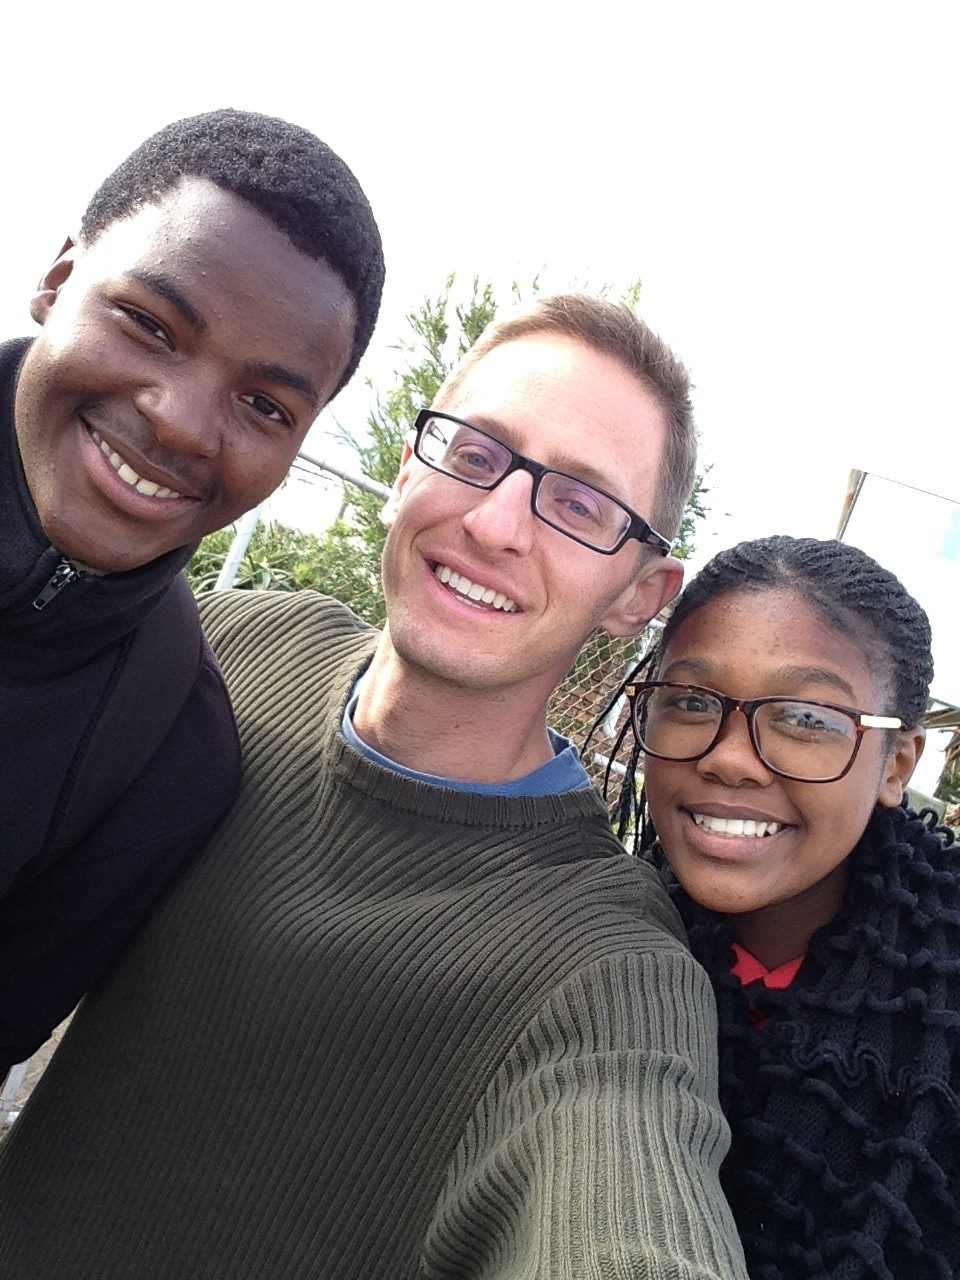 Jason Torreano, center, founded a program for South African youth like Thembisile, left, and Selunathi.